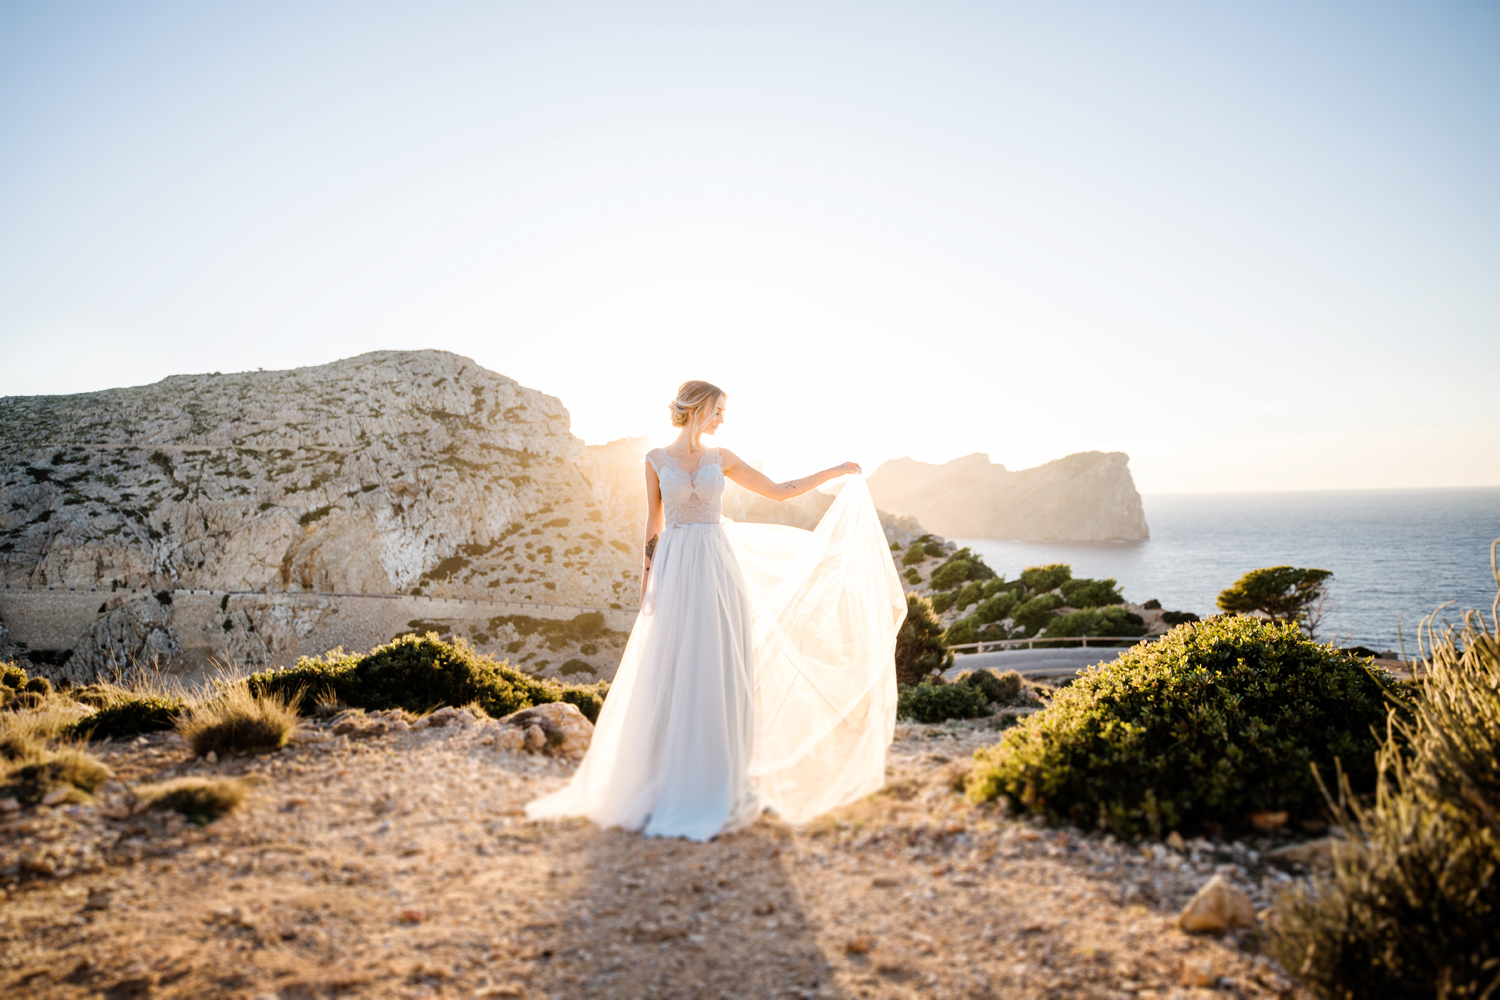 Heiraten auf Mallorca, Destination Wedding, Elopement Wedding, Hochzeitsfotograf Mallorca, Andreas Nusch Hochzeitsfotografie, Weddingphotographer Mallorca